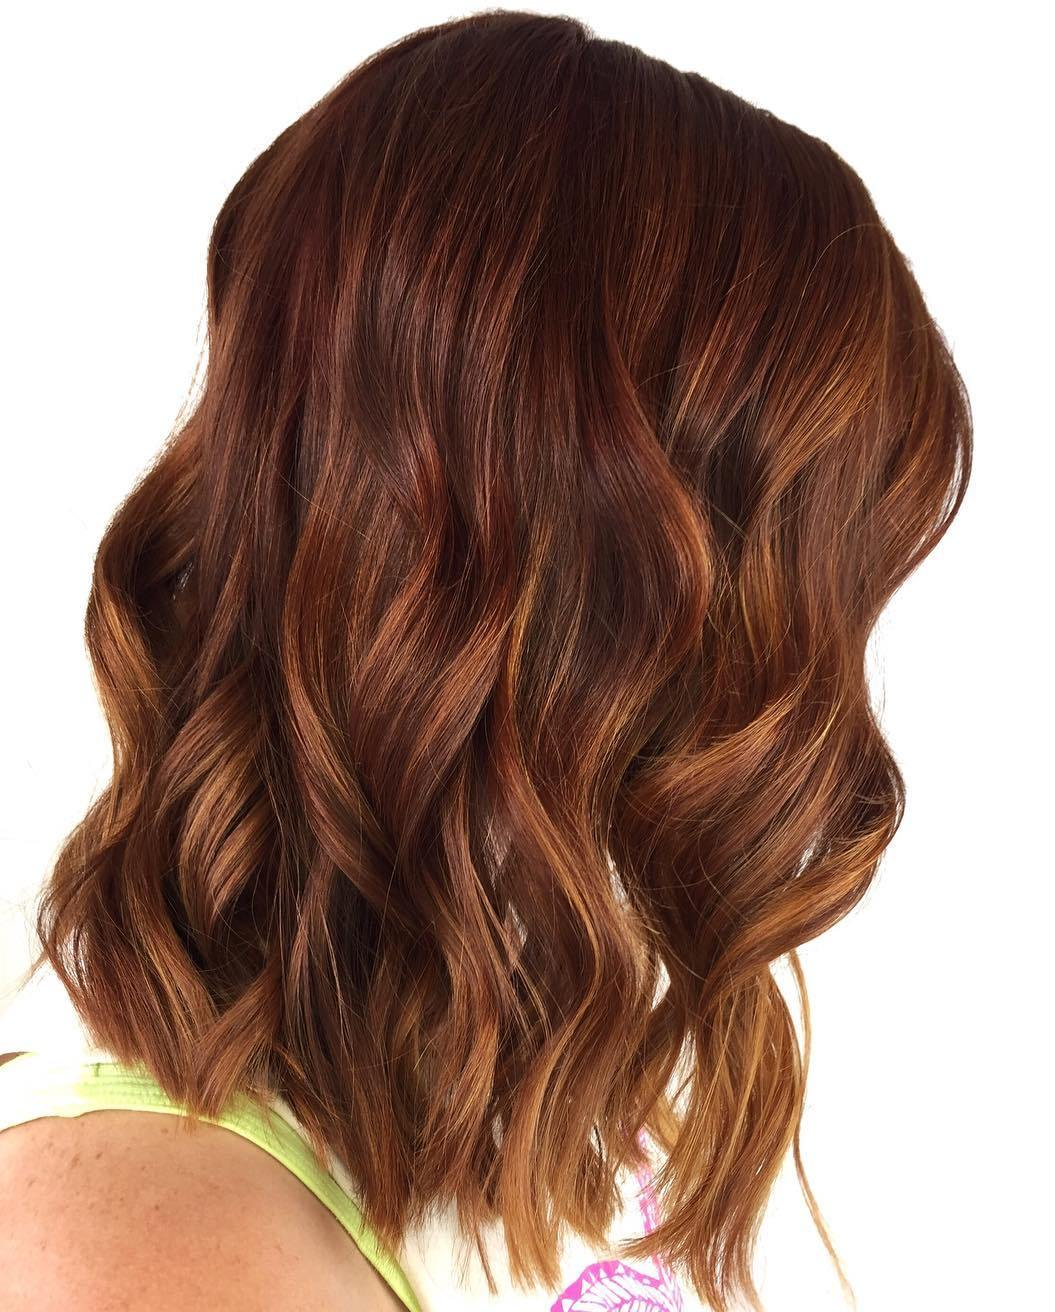 Brown Auburn hair color with highlights